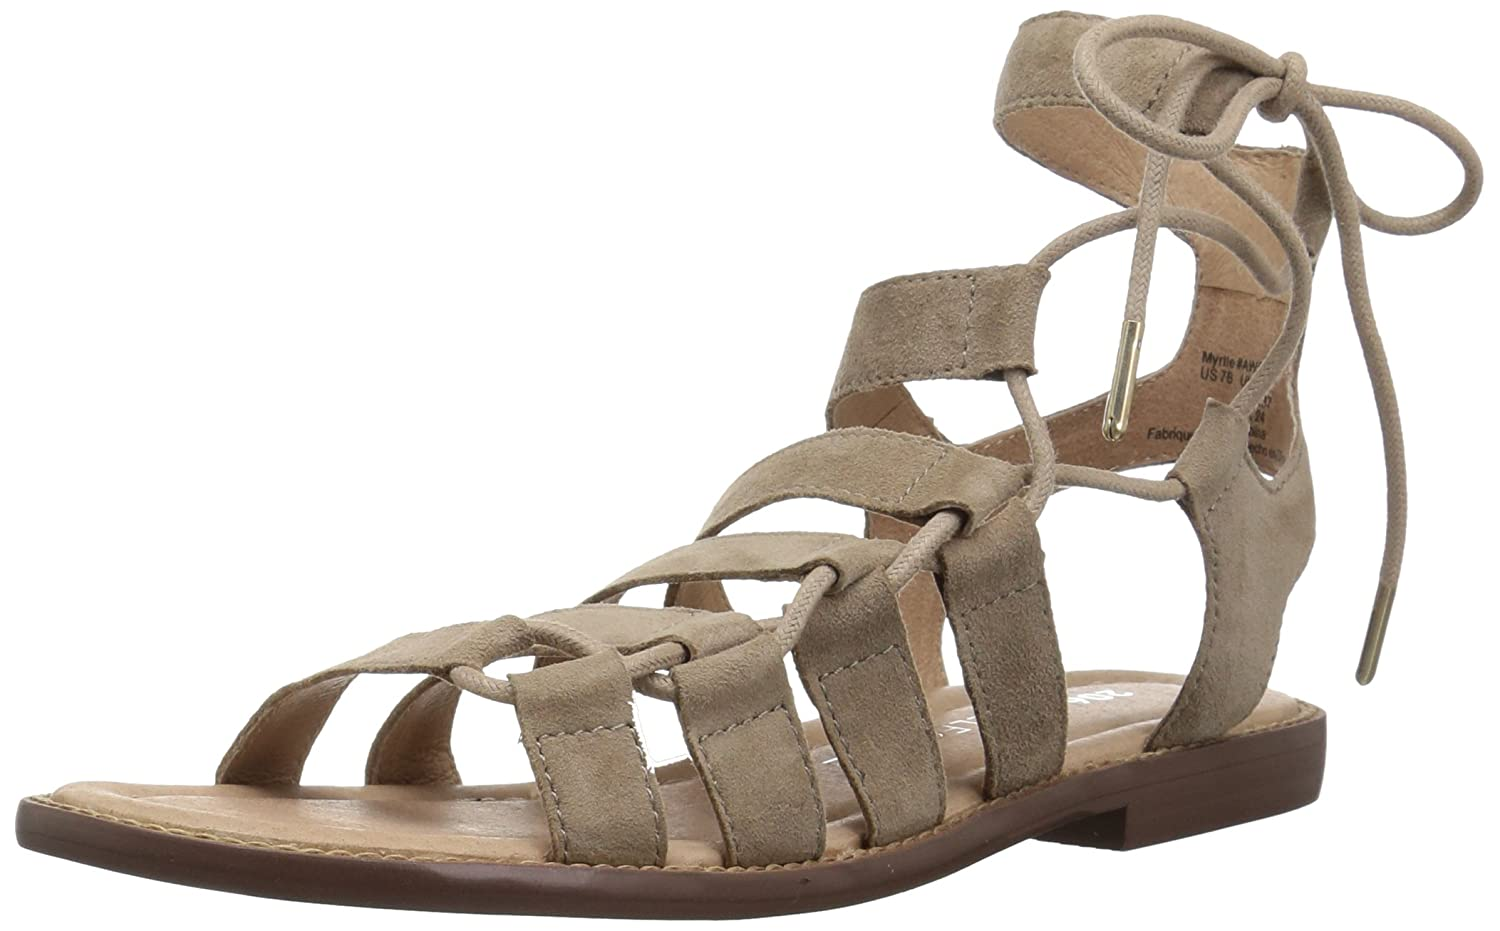 206 Collective Women's Myrtle Gladiator Fashion Flat Sandal B078B27BL5 11.5 B(M) US|Taupe Suede